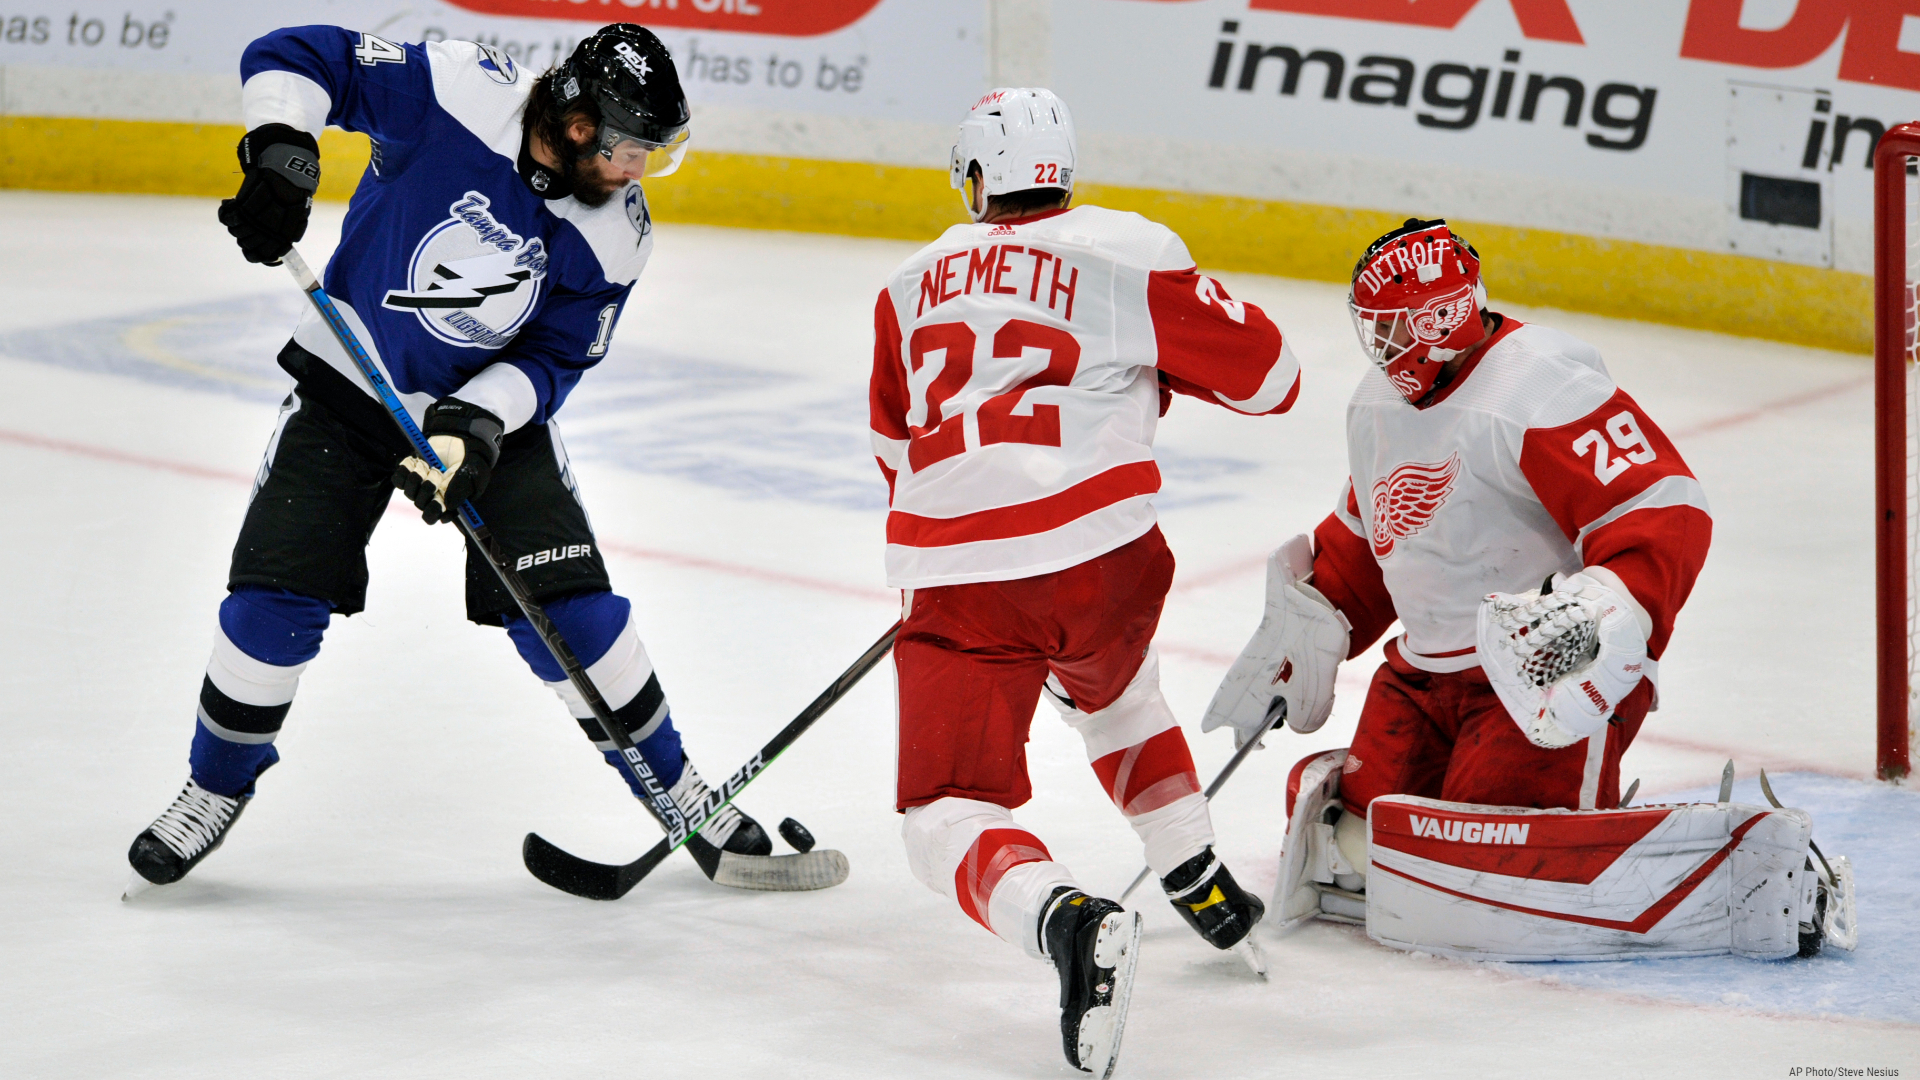 Tampa Bay Lightning's Pat Maroon (14) tries to get a stick on a rebound in front of Detroit Red Wings' Patrik Nemeth (22) and goalie Thomas Greiss (29) during the first period of an NHL hockey game Friday, Feb. 5, 2021, in Tampa, Fla. (AP Photo/Steve Nesius)